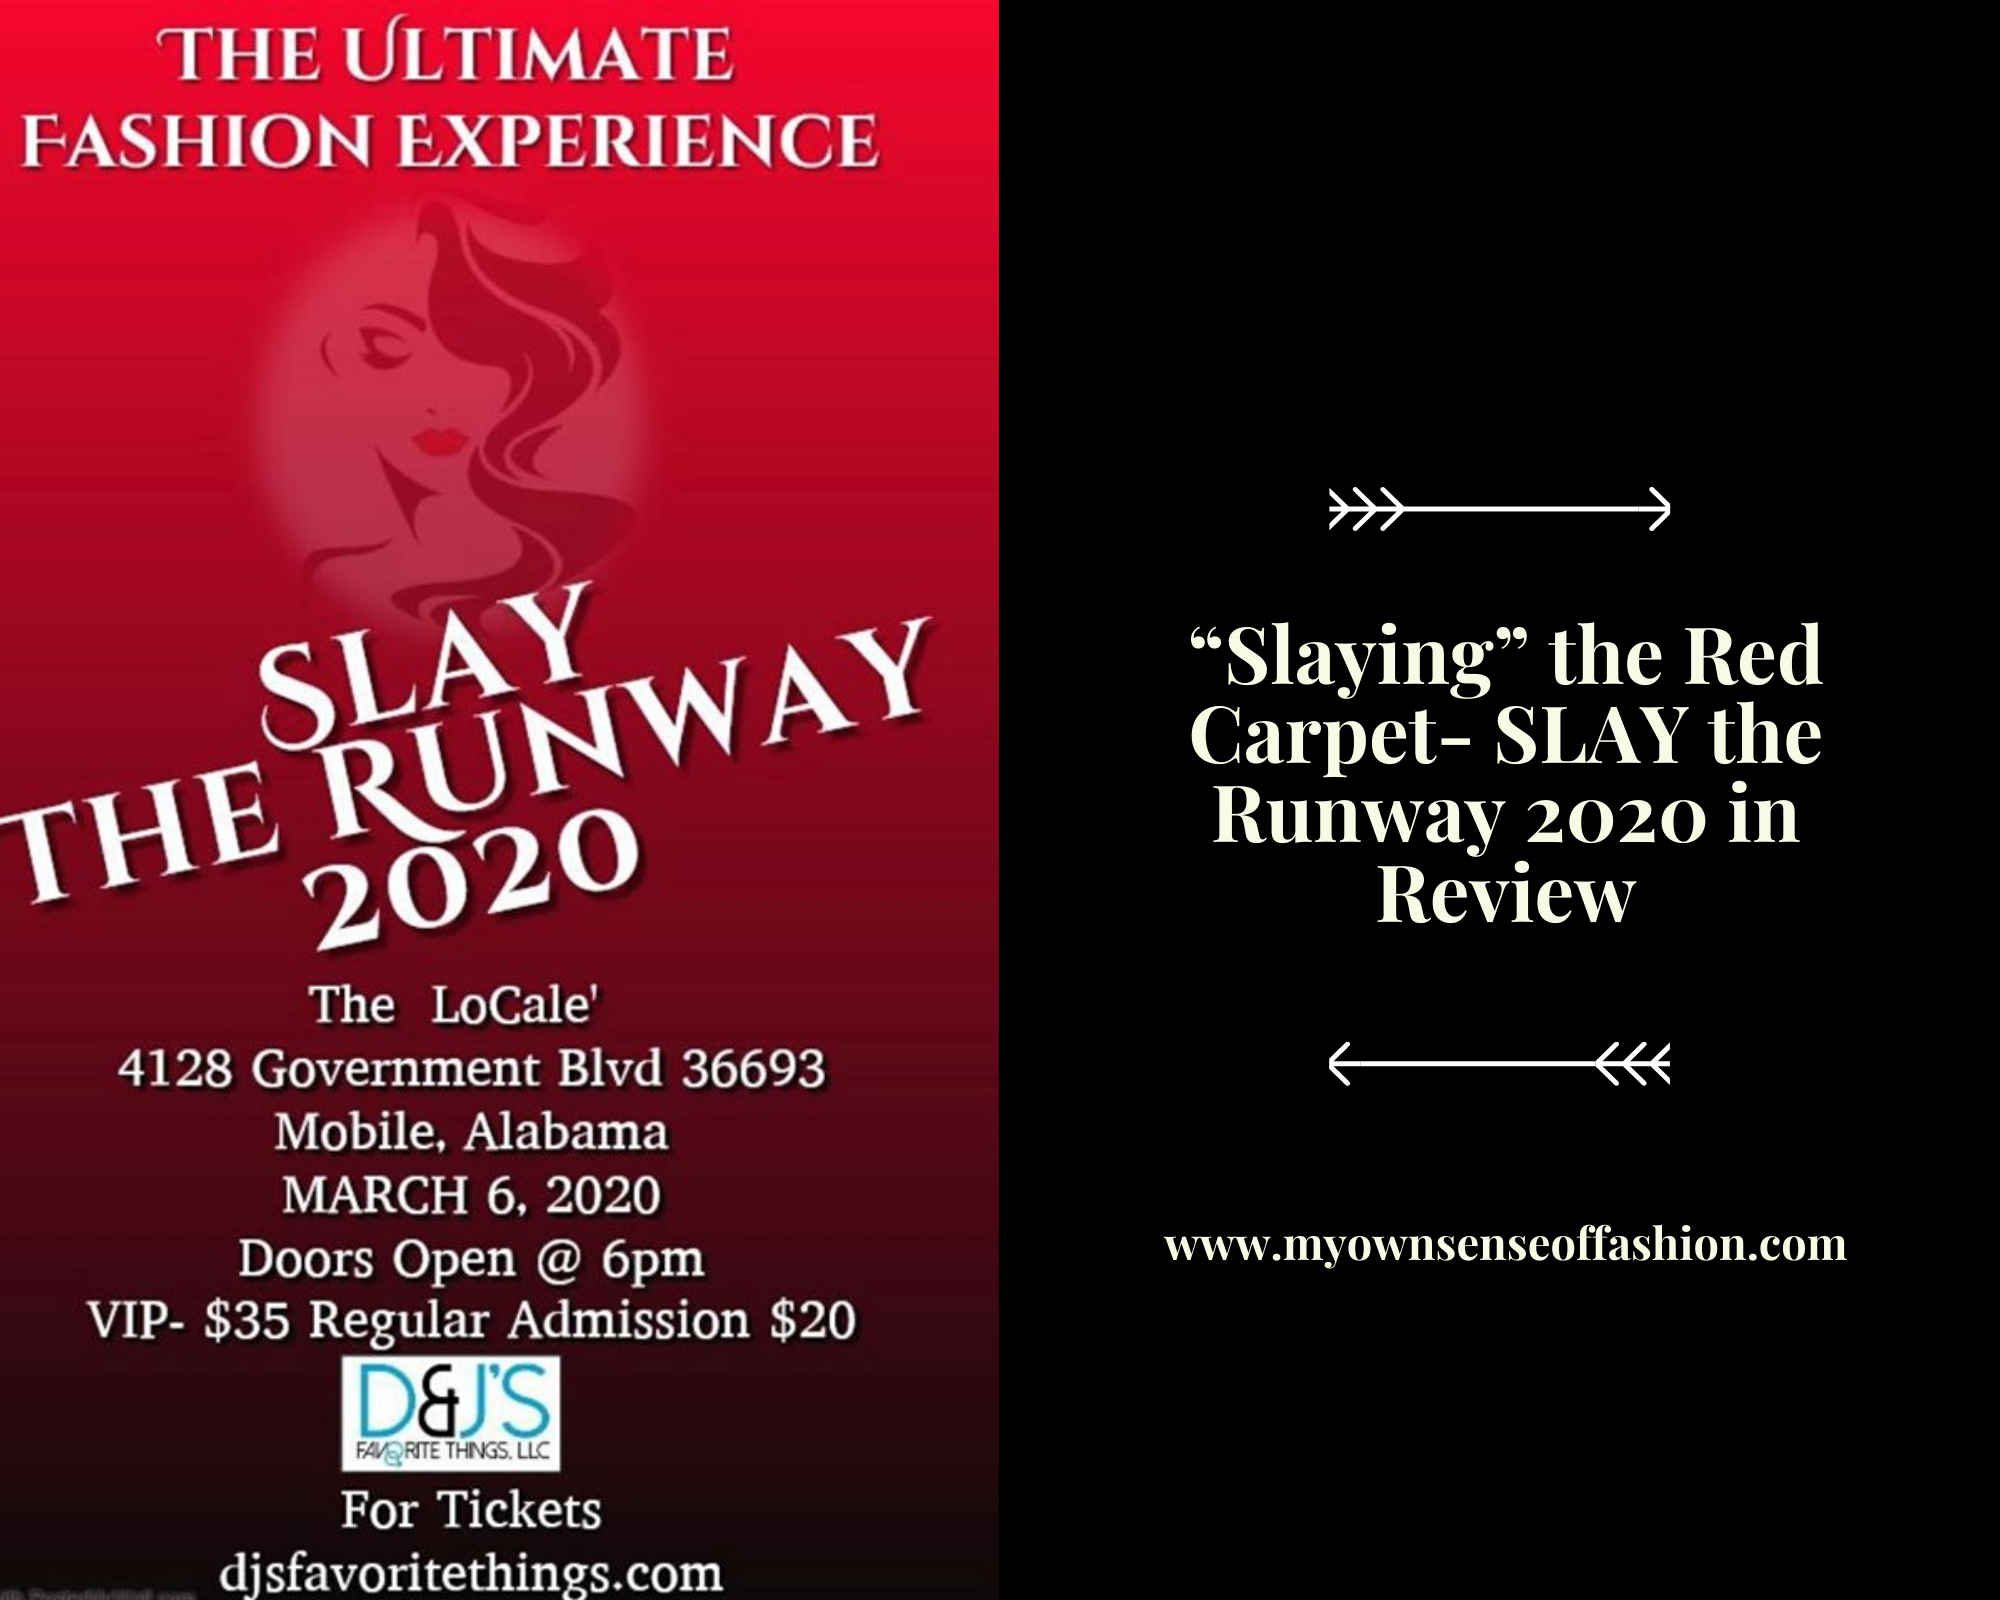 """Slaying"" the Red Carpet- SLAY the Runway 2020 in Review"